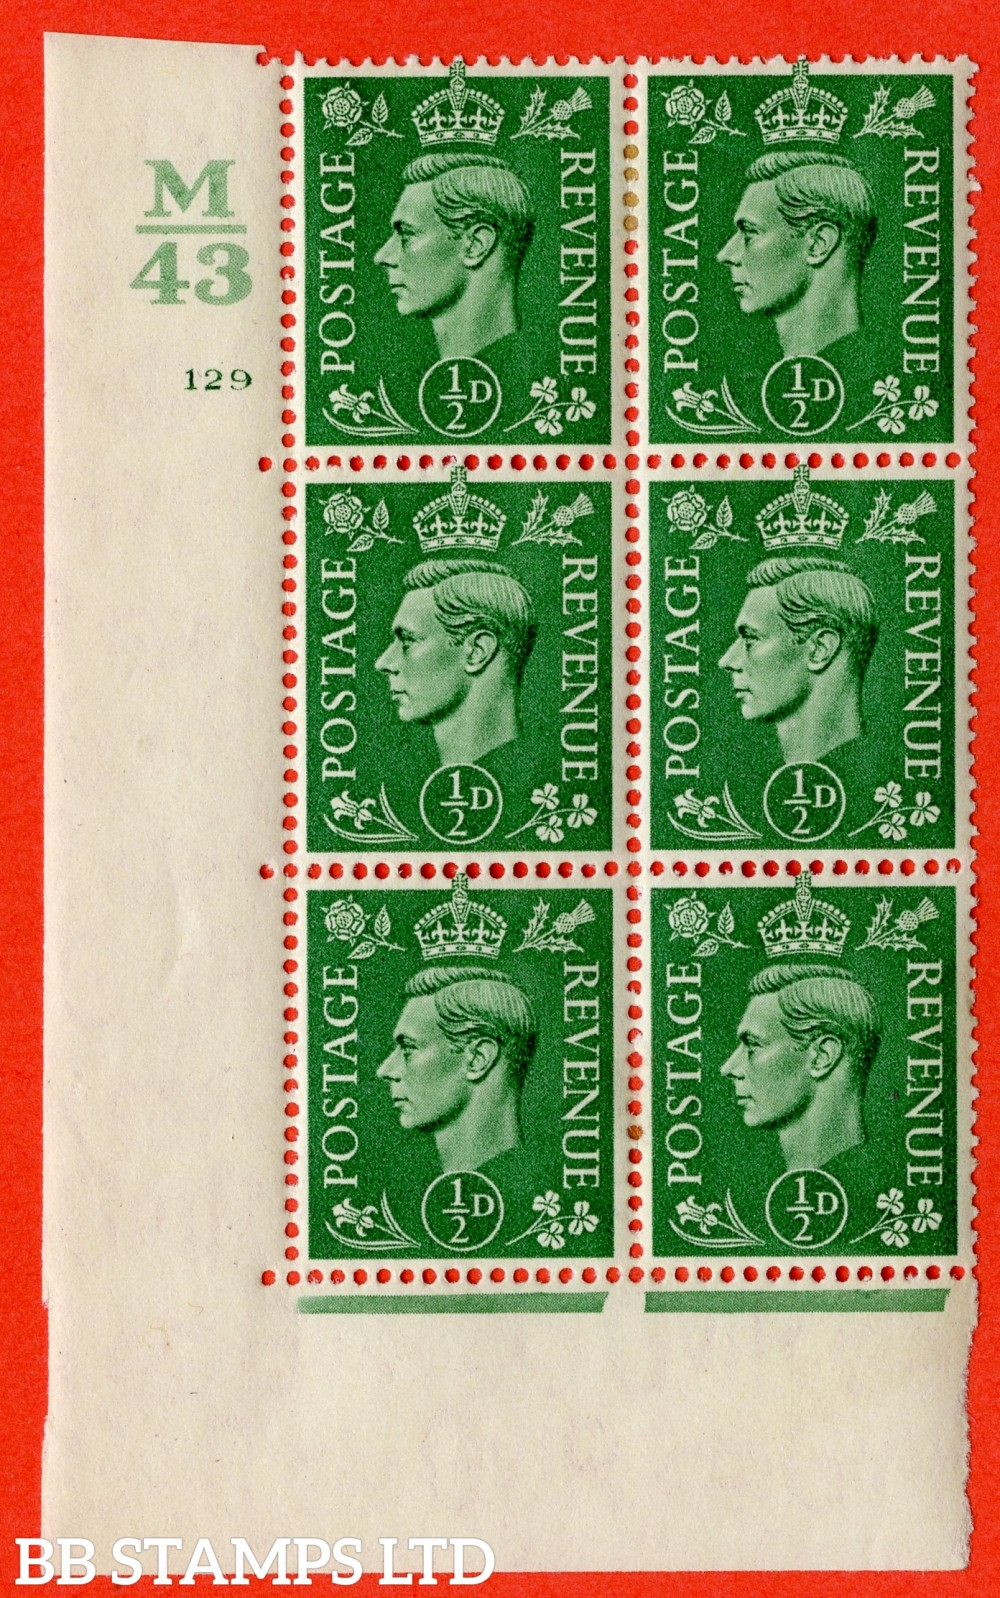 "SG. 485. Q2. ½d Pale Green. A very fine lightly mounted mint "" Control M43 cylinder 129 no dot "" block of 6 with perf type 5 E/I with marginal rule."